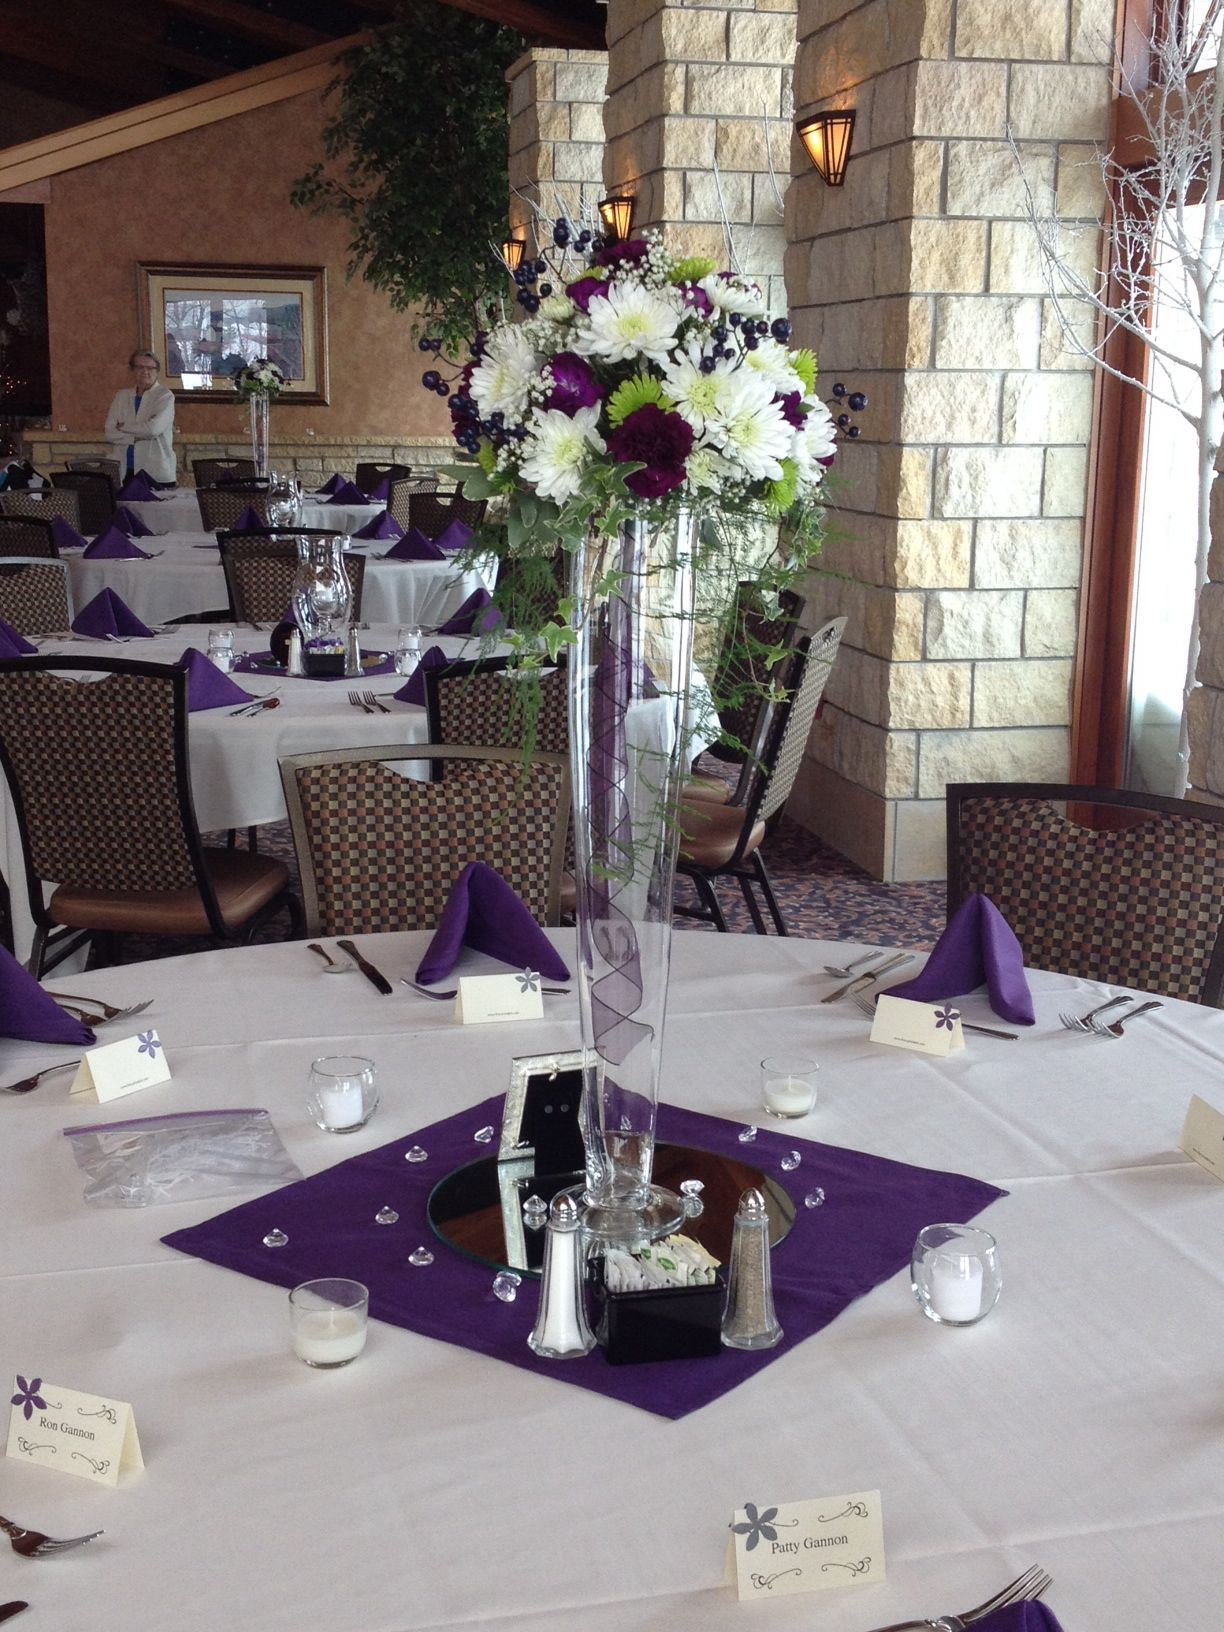 Wedding centerpiece cushion mums dark purple standard and mini cushion mums dark purple standard and mini carnations green athos mums with ivy placed in a tall pilsner vase reviewsmspy